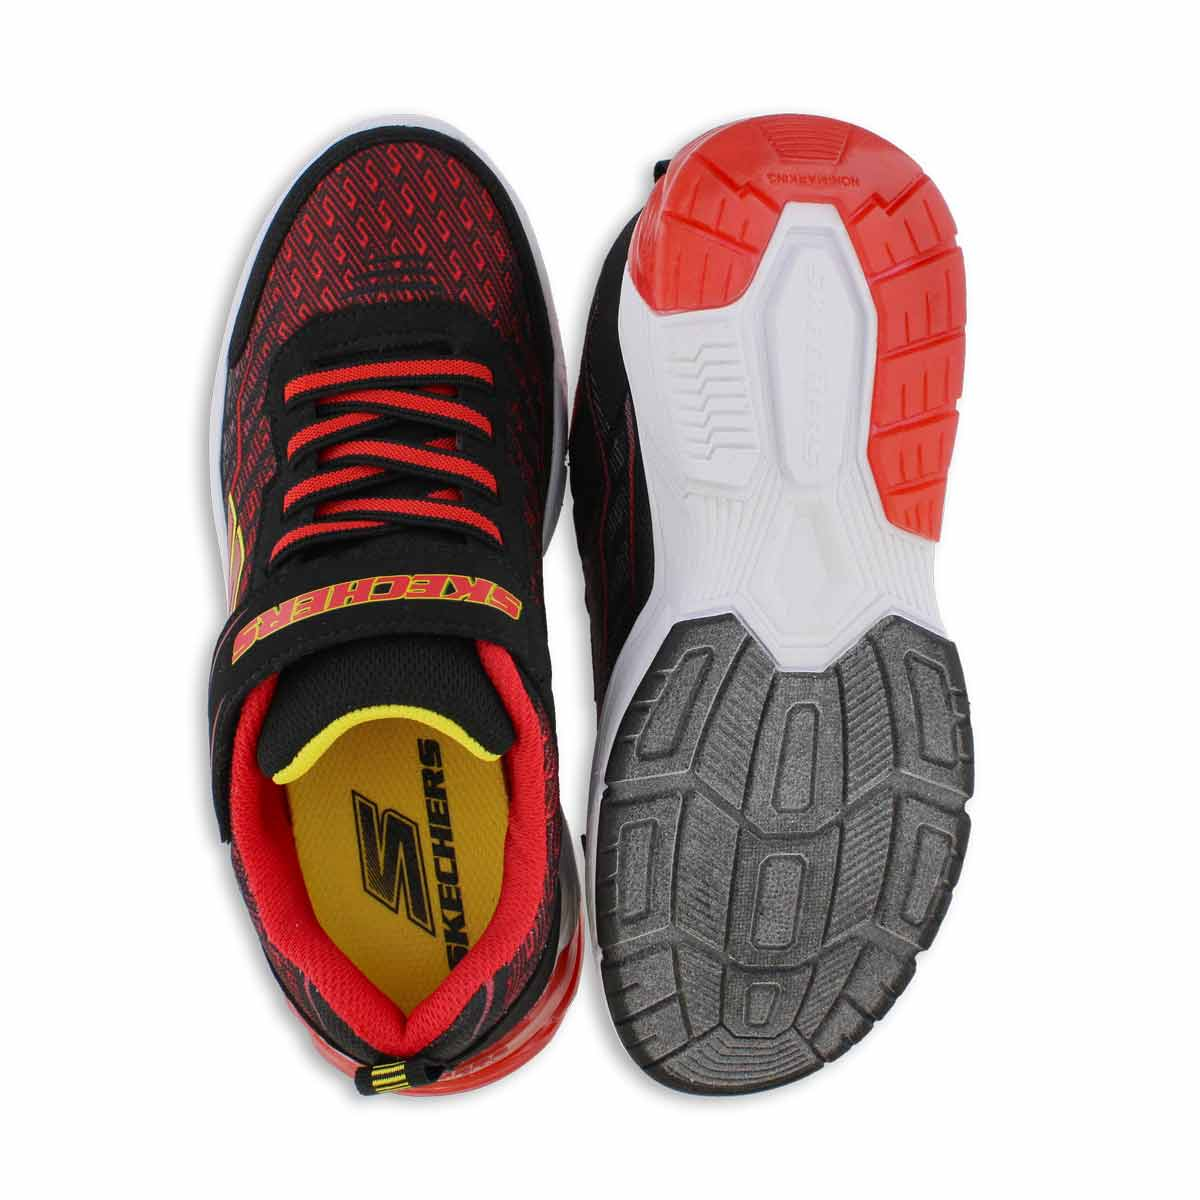 Bys Thermoflux 2.0 blk/rd sneaker